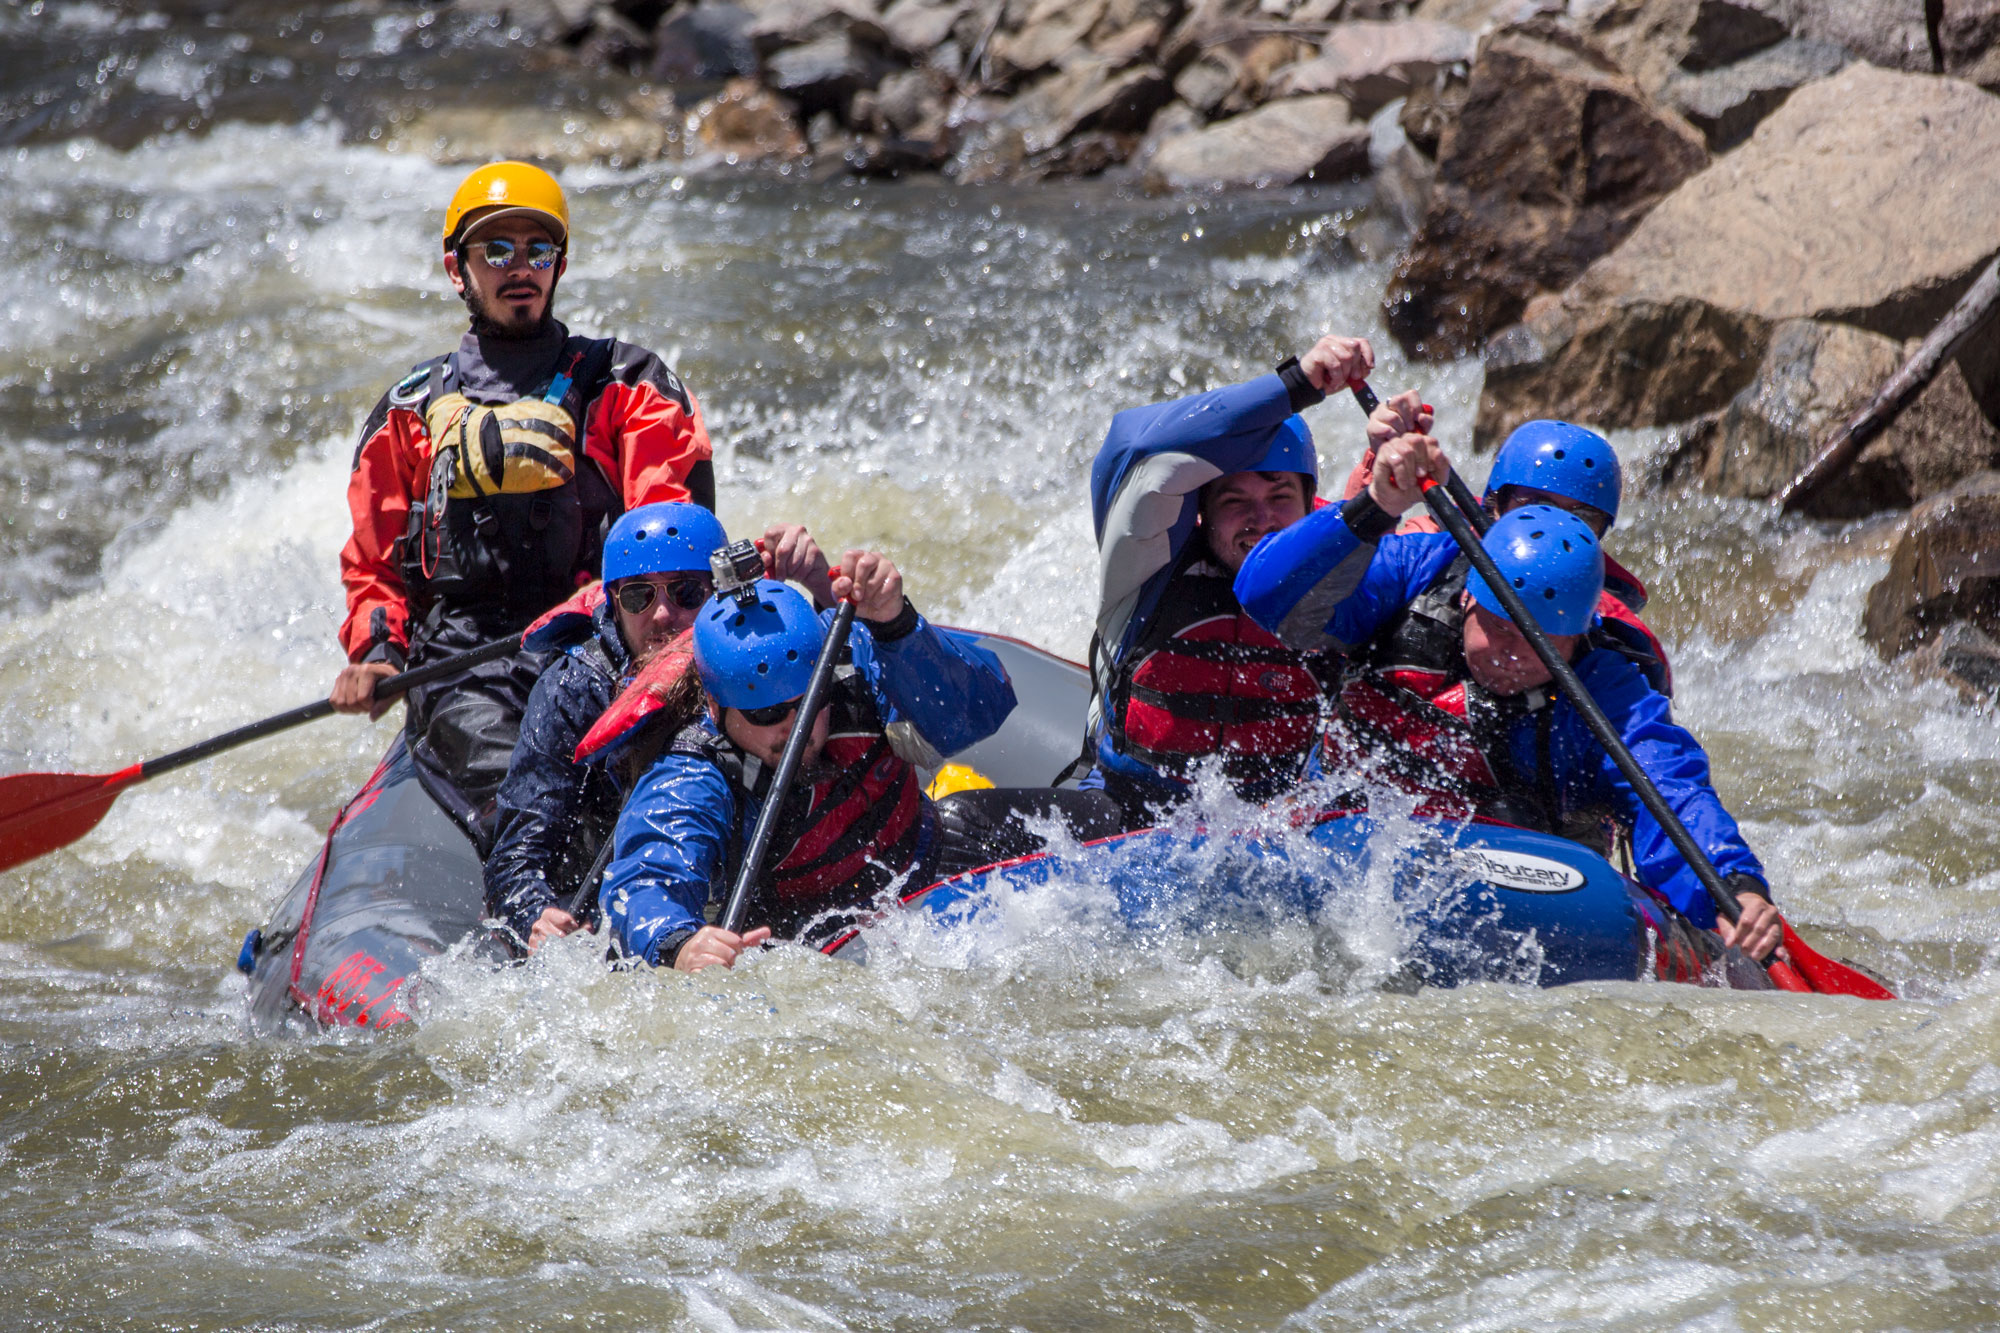 Rafting Outfitters May Soon Have An Easier And Cheaper Time On Colorado's Public Land